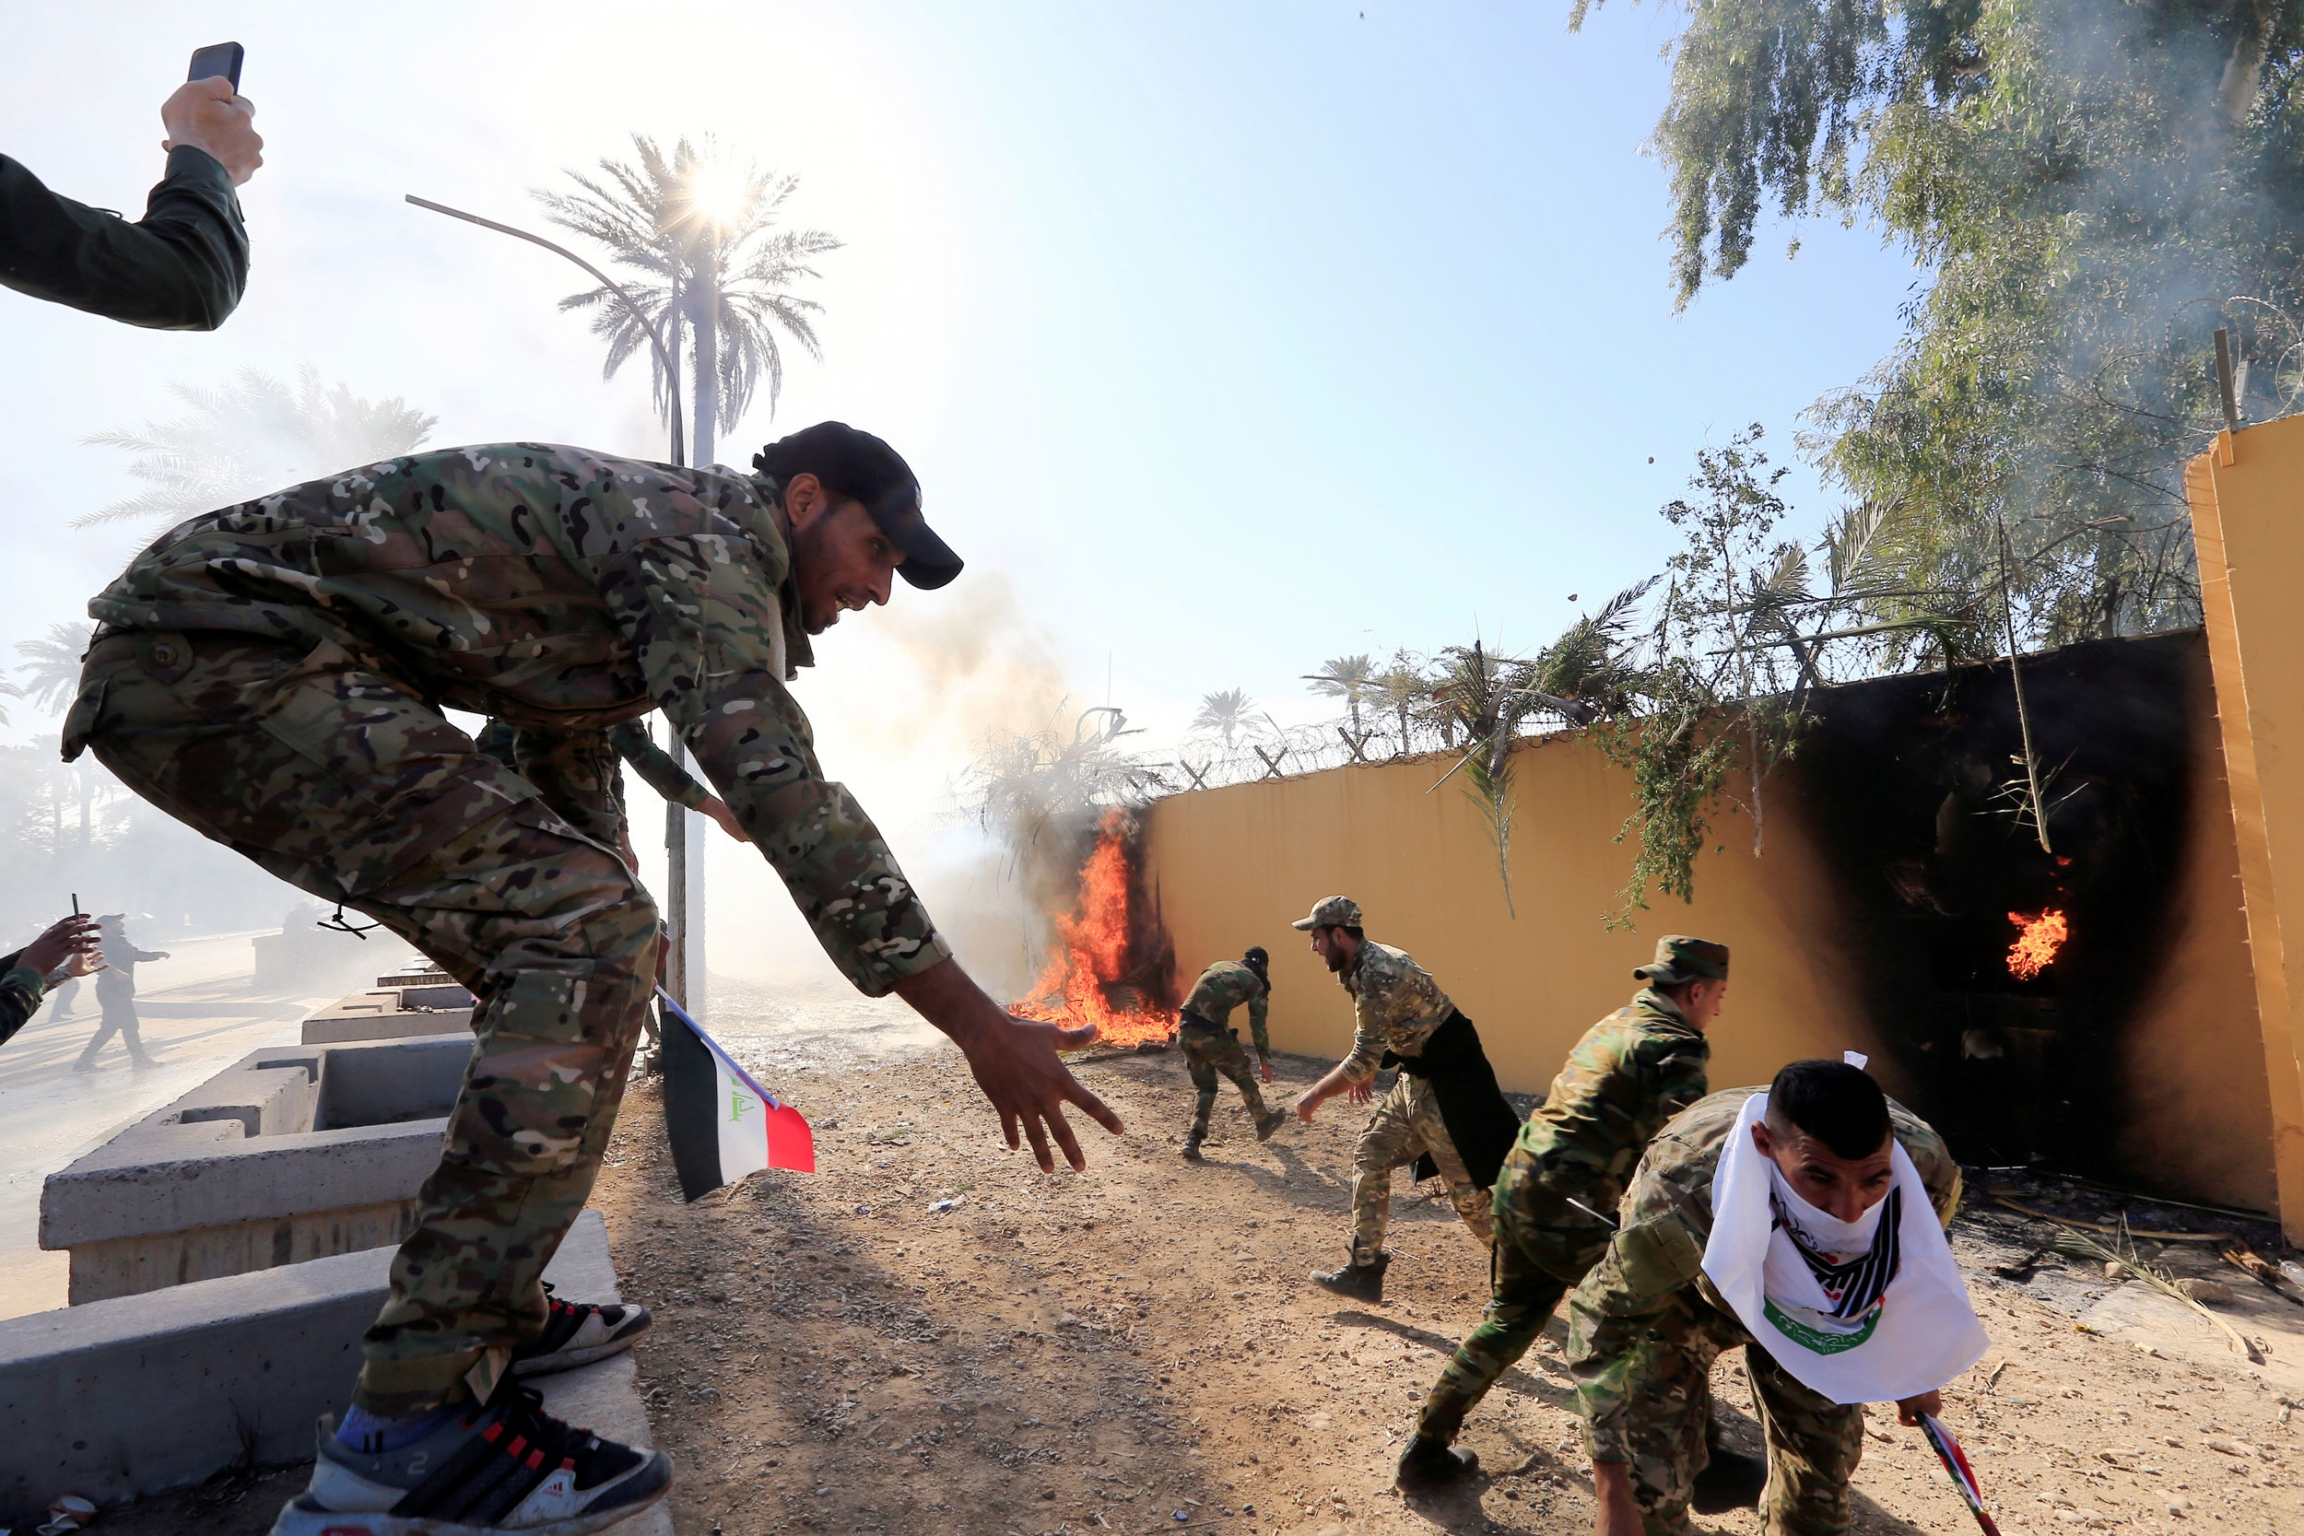 Several men are shown wearing military fatigues outside of a khaki-colored wall that has been set on fire.